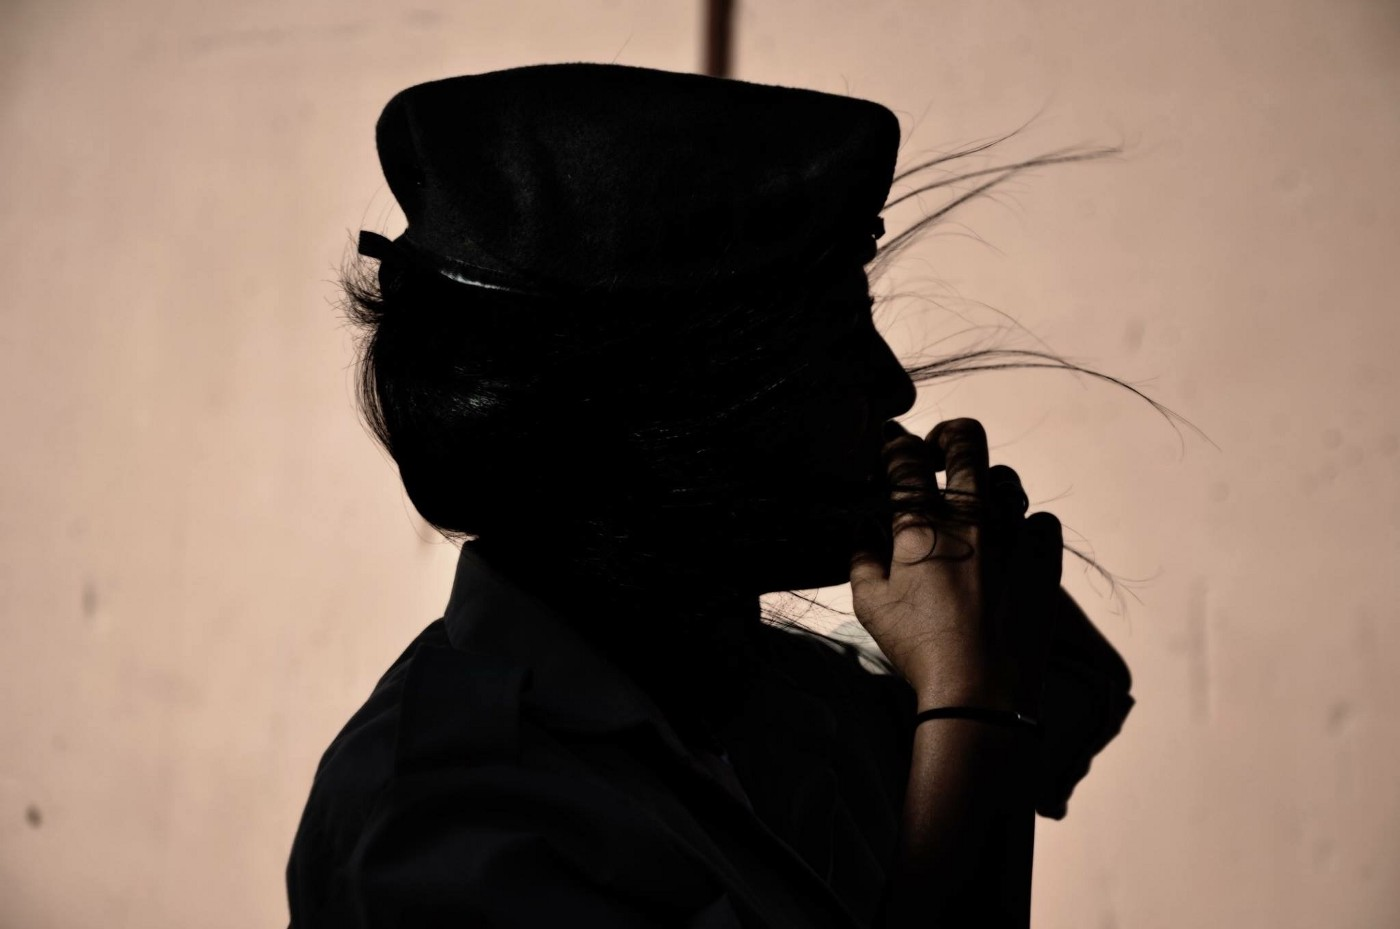 Closeup silhouette of a female soldier.